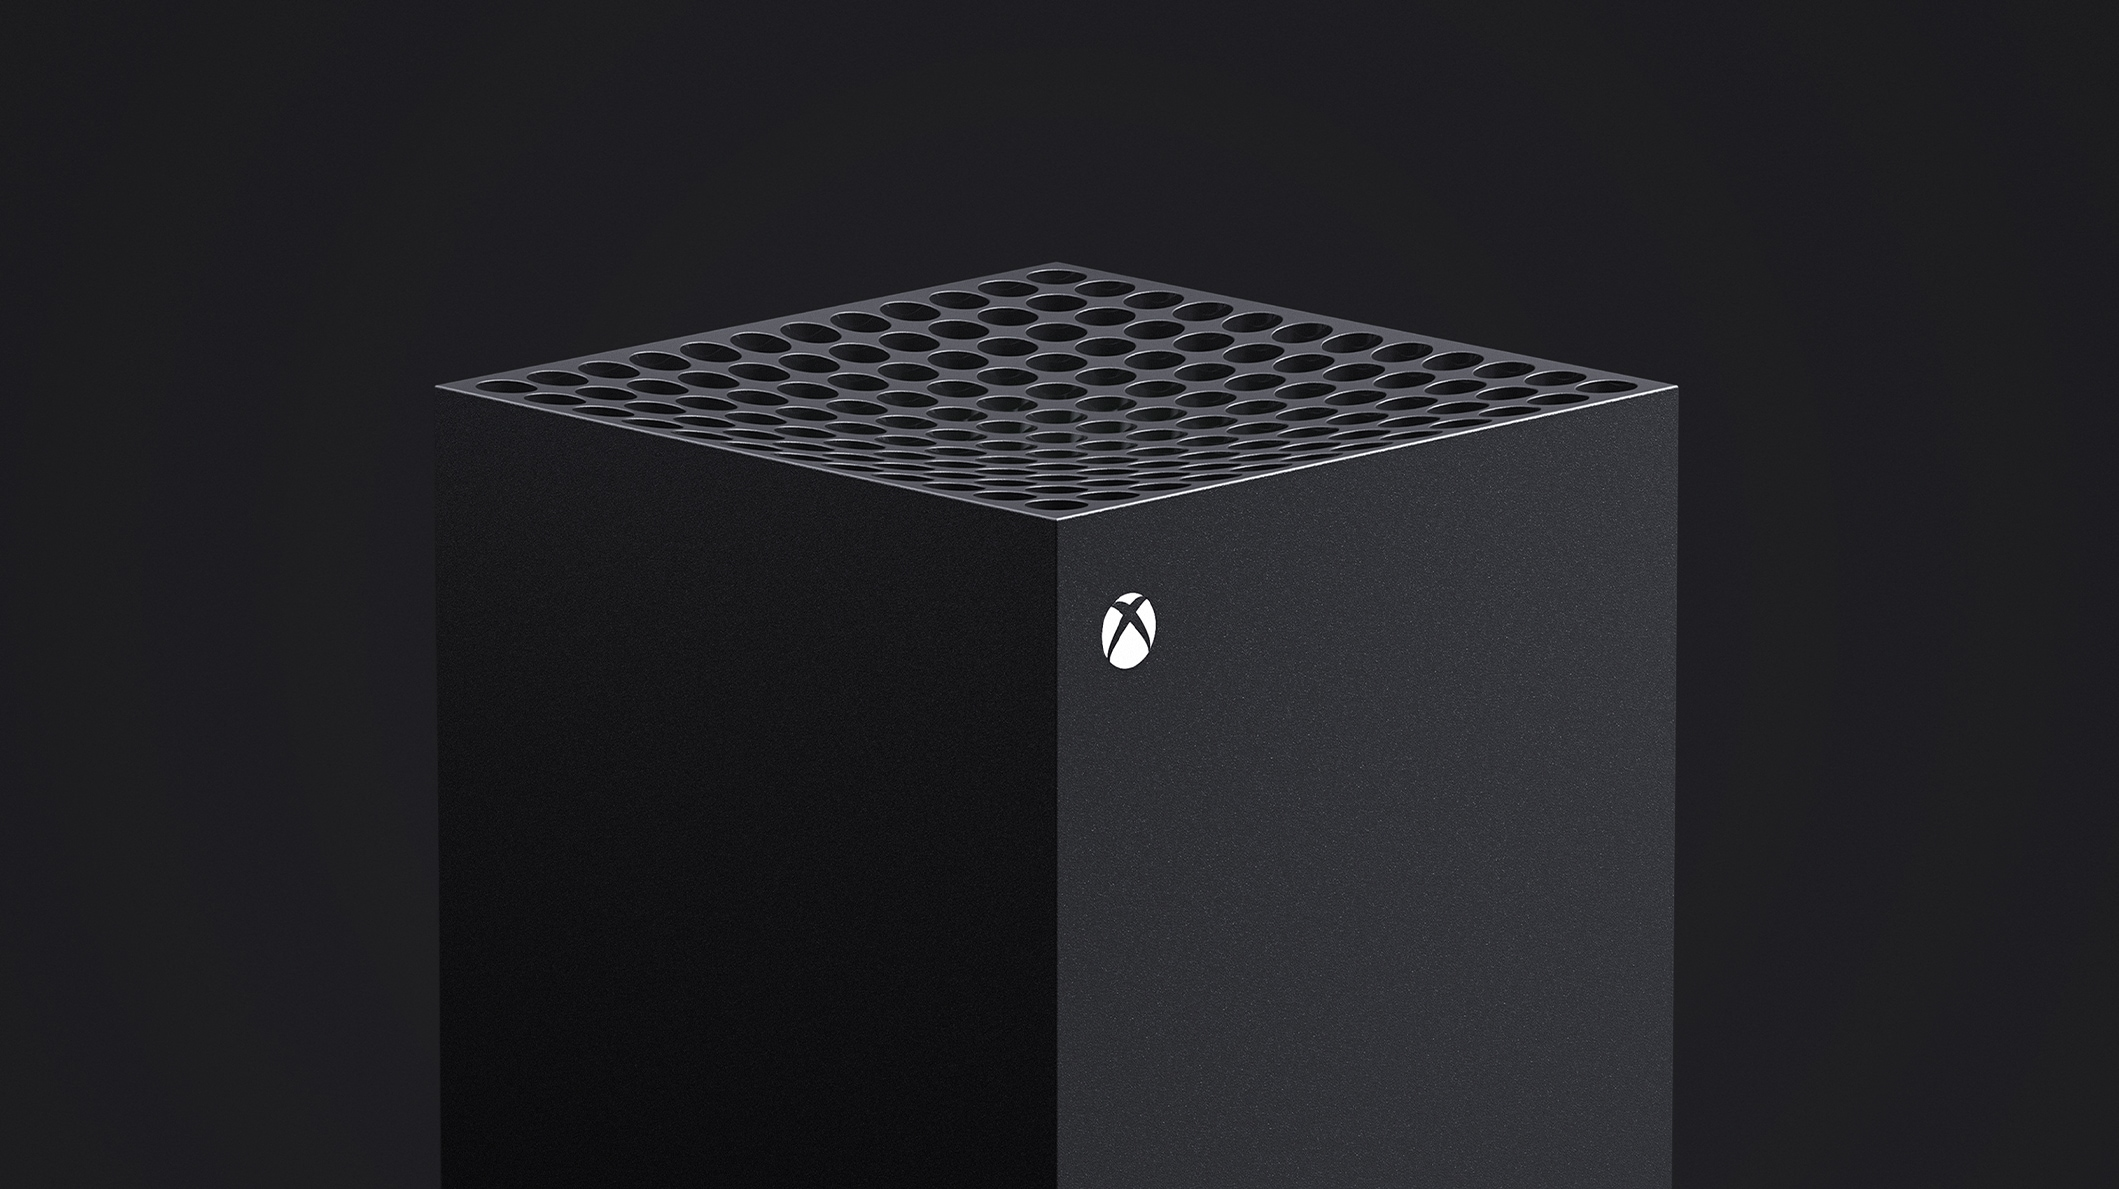 Xbox Series X console top view with green light illuminated